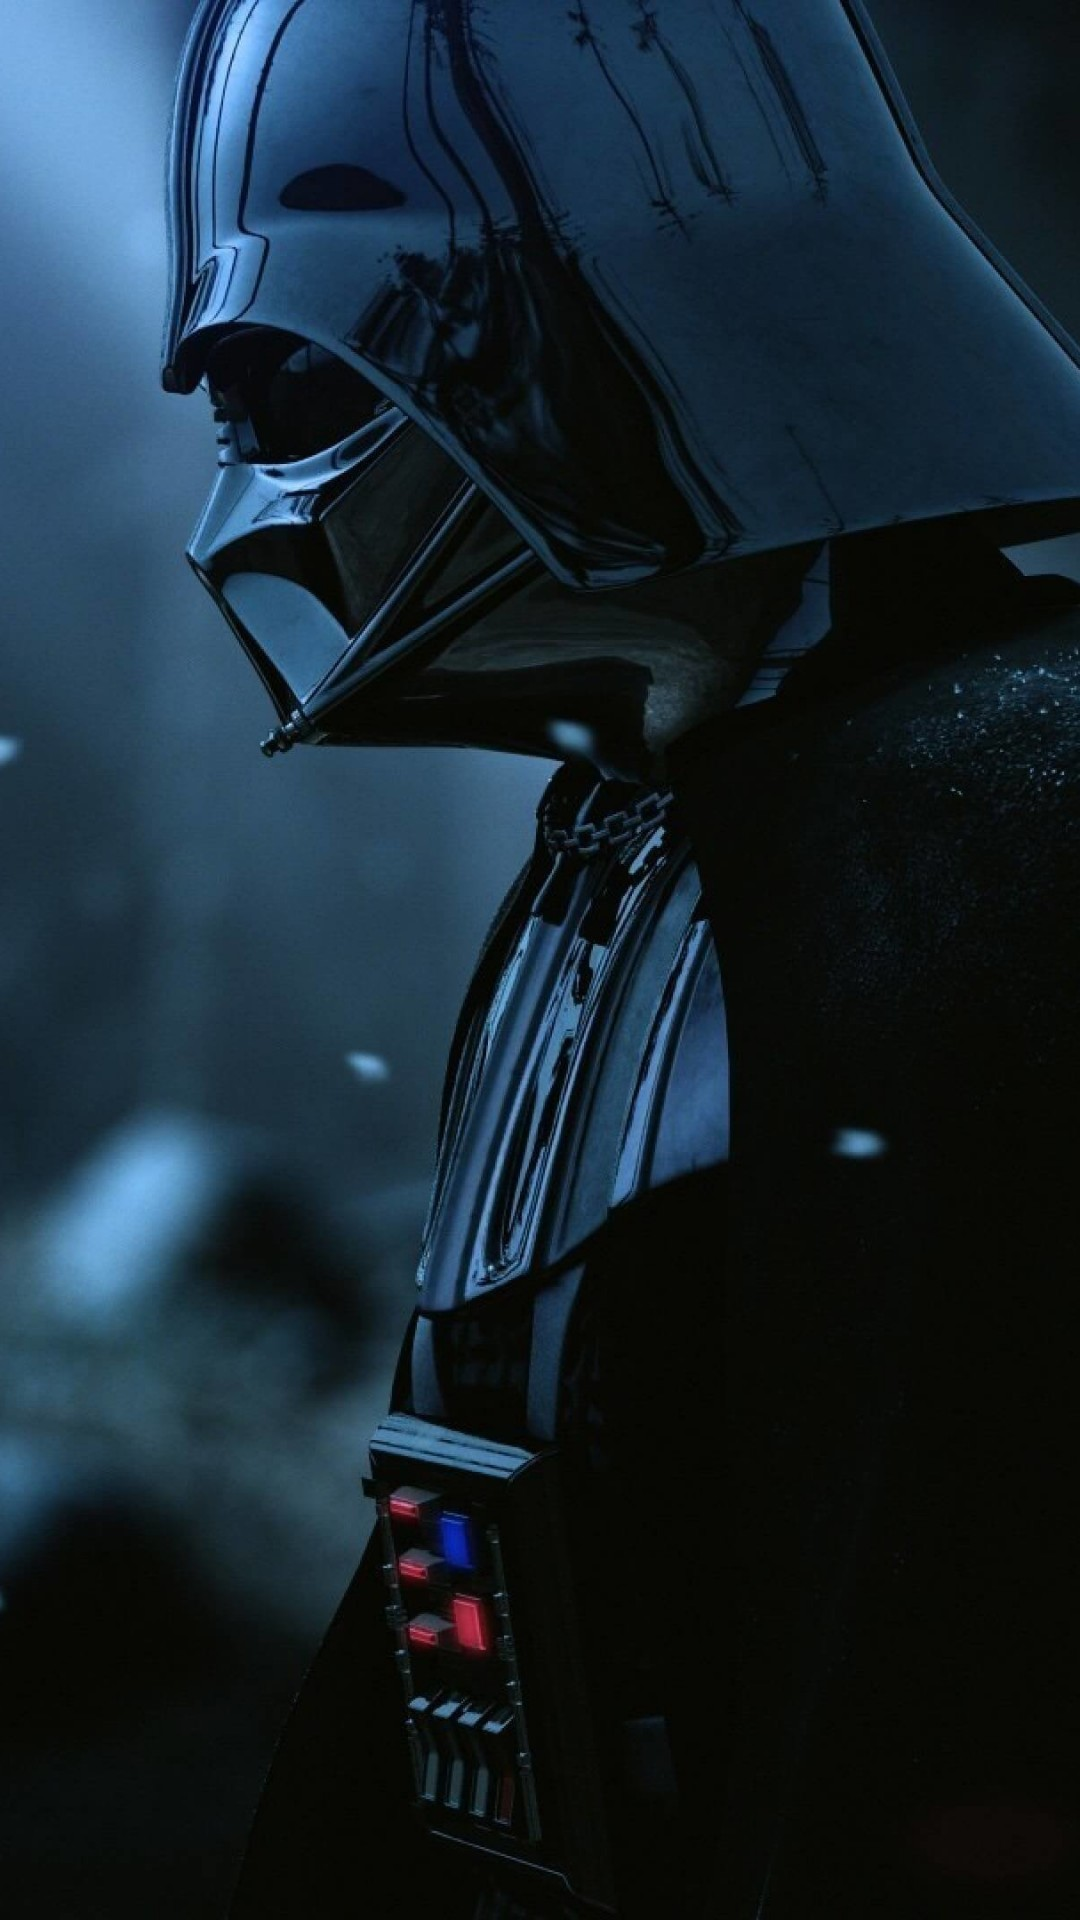 Darth Vader - The Force Unleashed 2 Wallpaper for HTC One